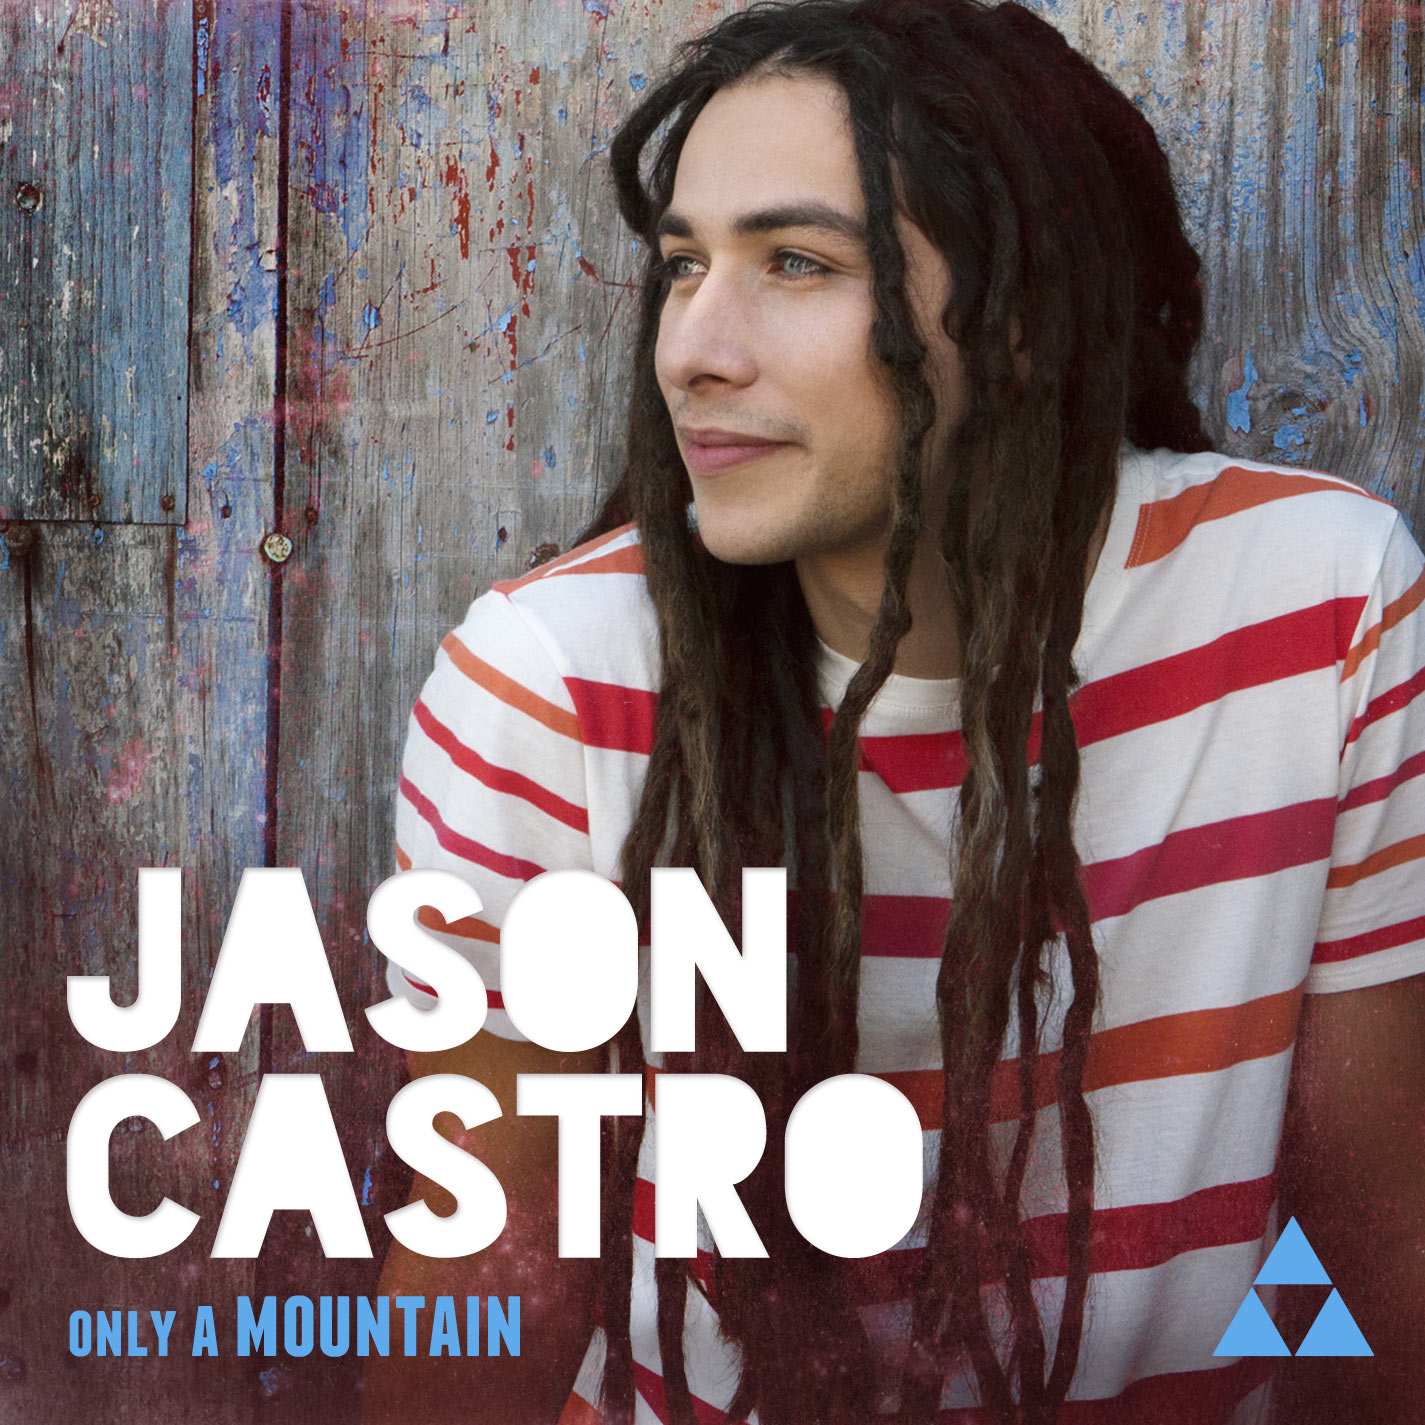 Jason Castro Bachelor Jason Castro's Music Video For